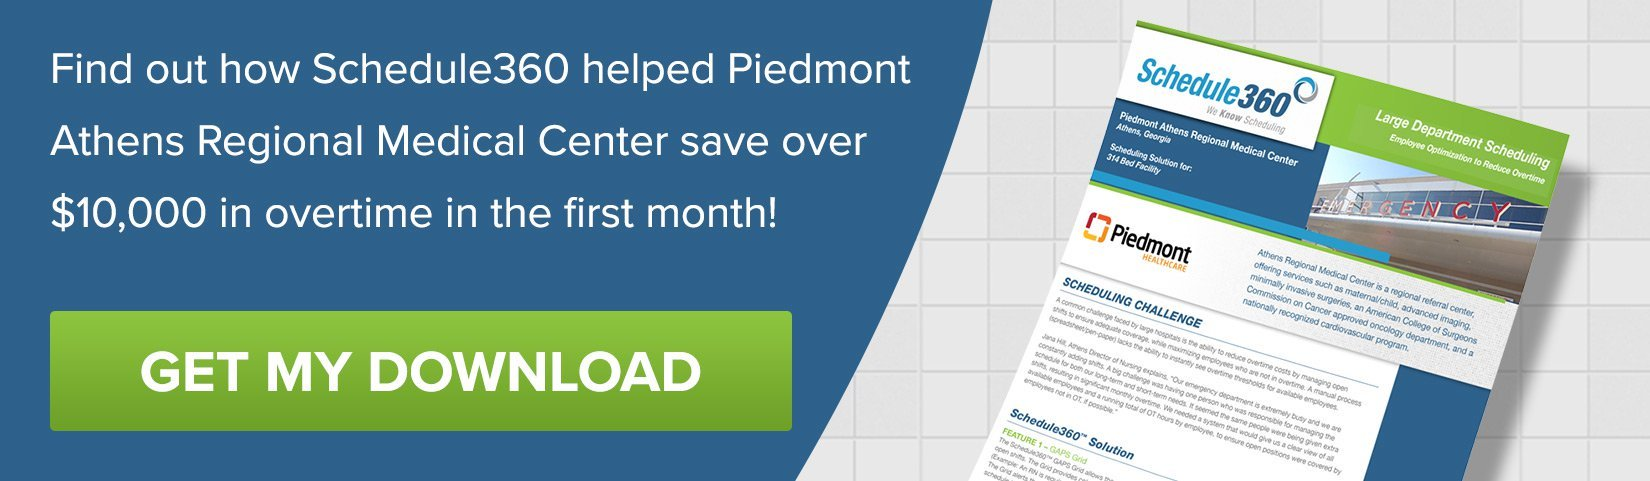 Find out how Schedule360 helped Piedmont Athens Regional Medical Center save over $10,000 in overtime in the first month!